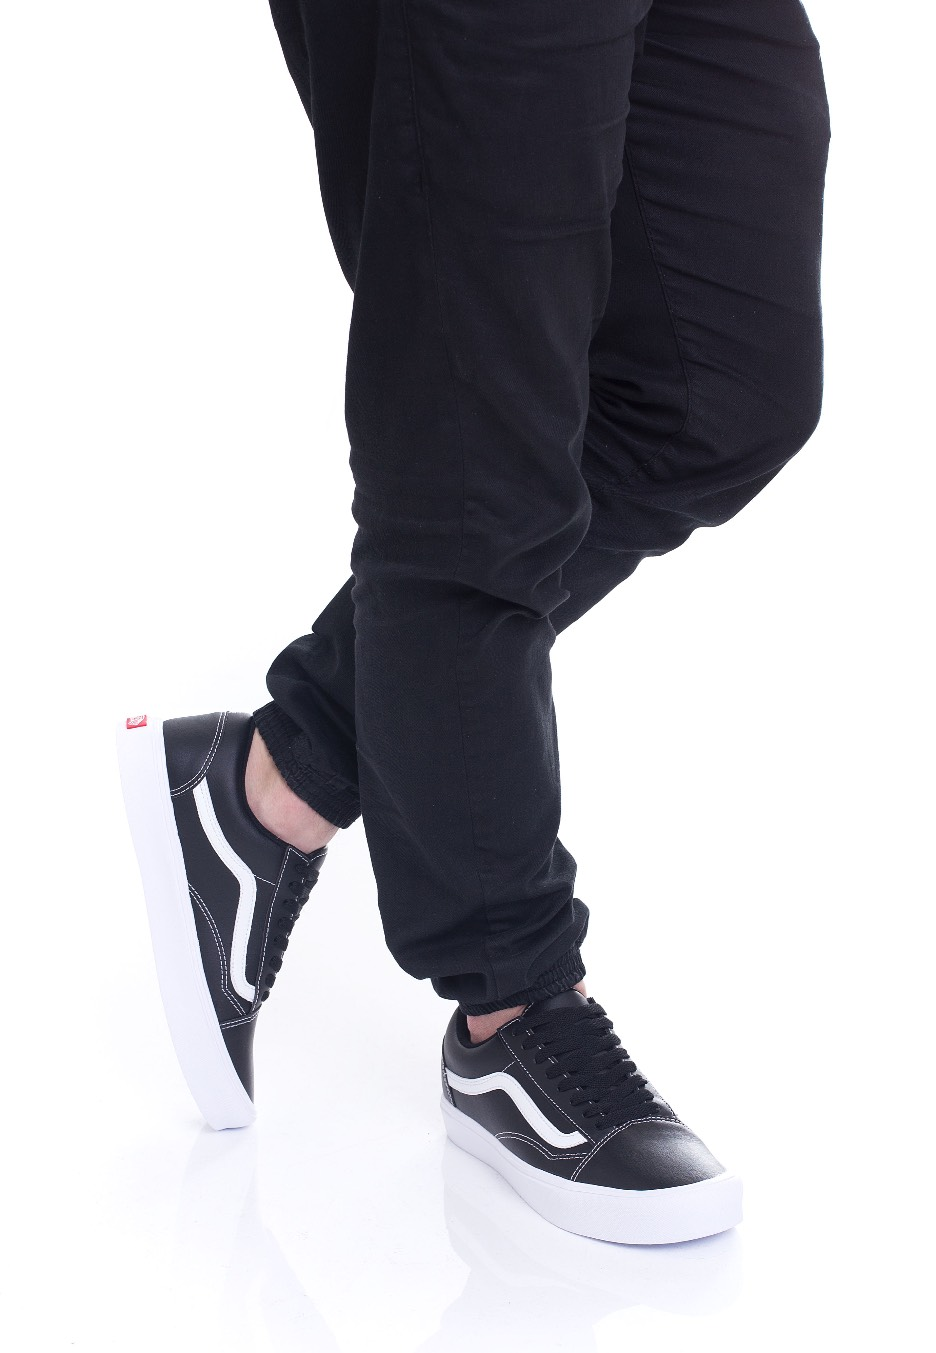 2ffed84e8c Vans - Old Skool Lite Classic Tumble Black True White - Schuhe ...